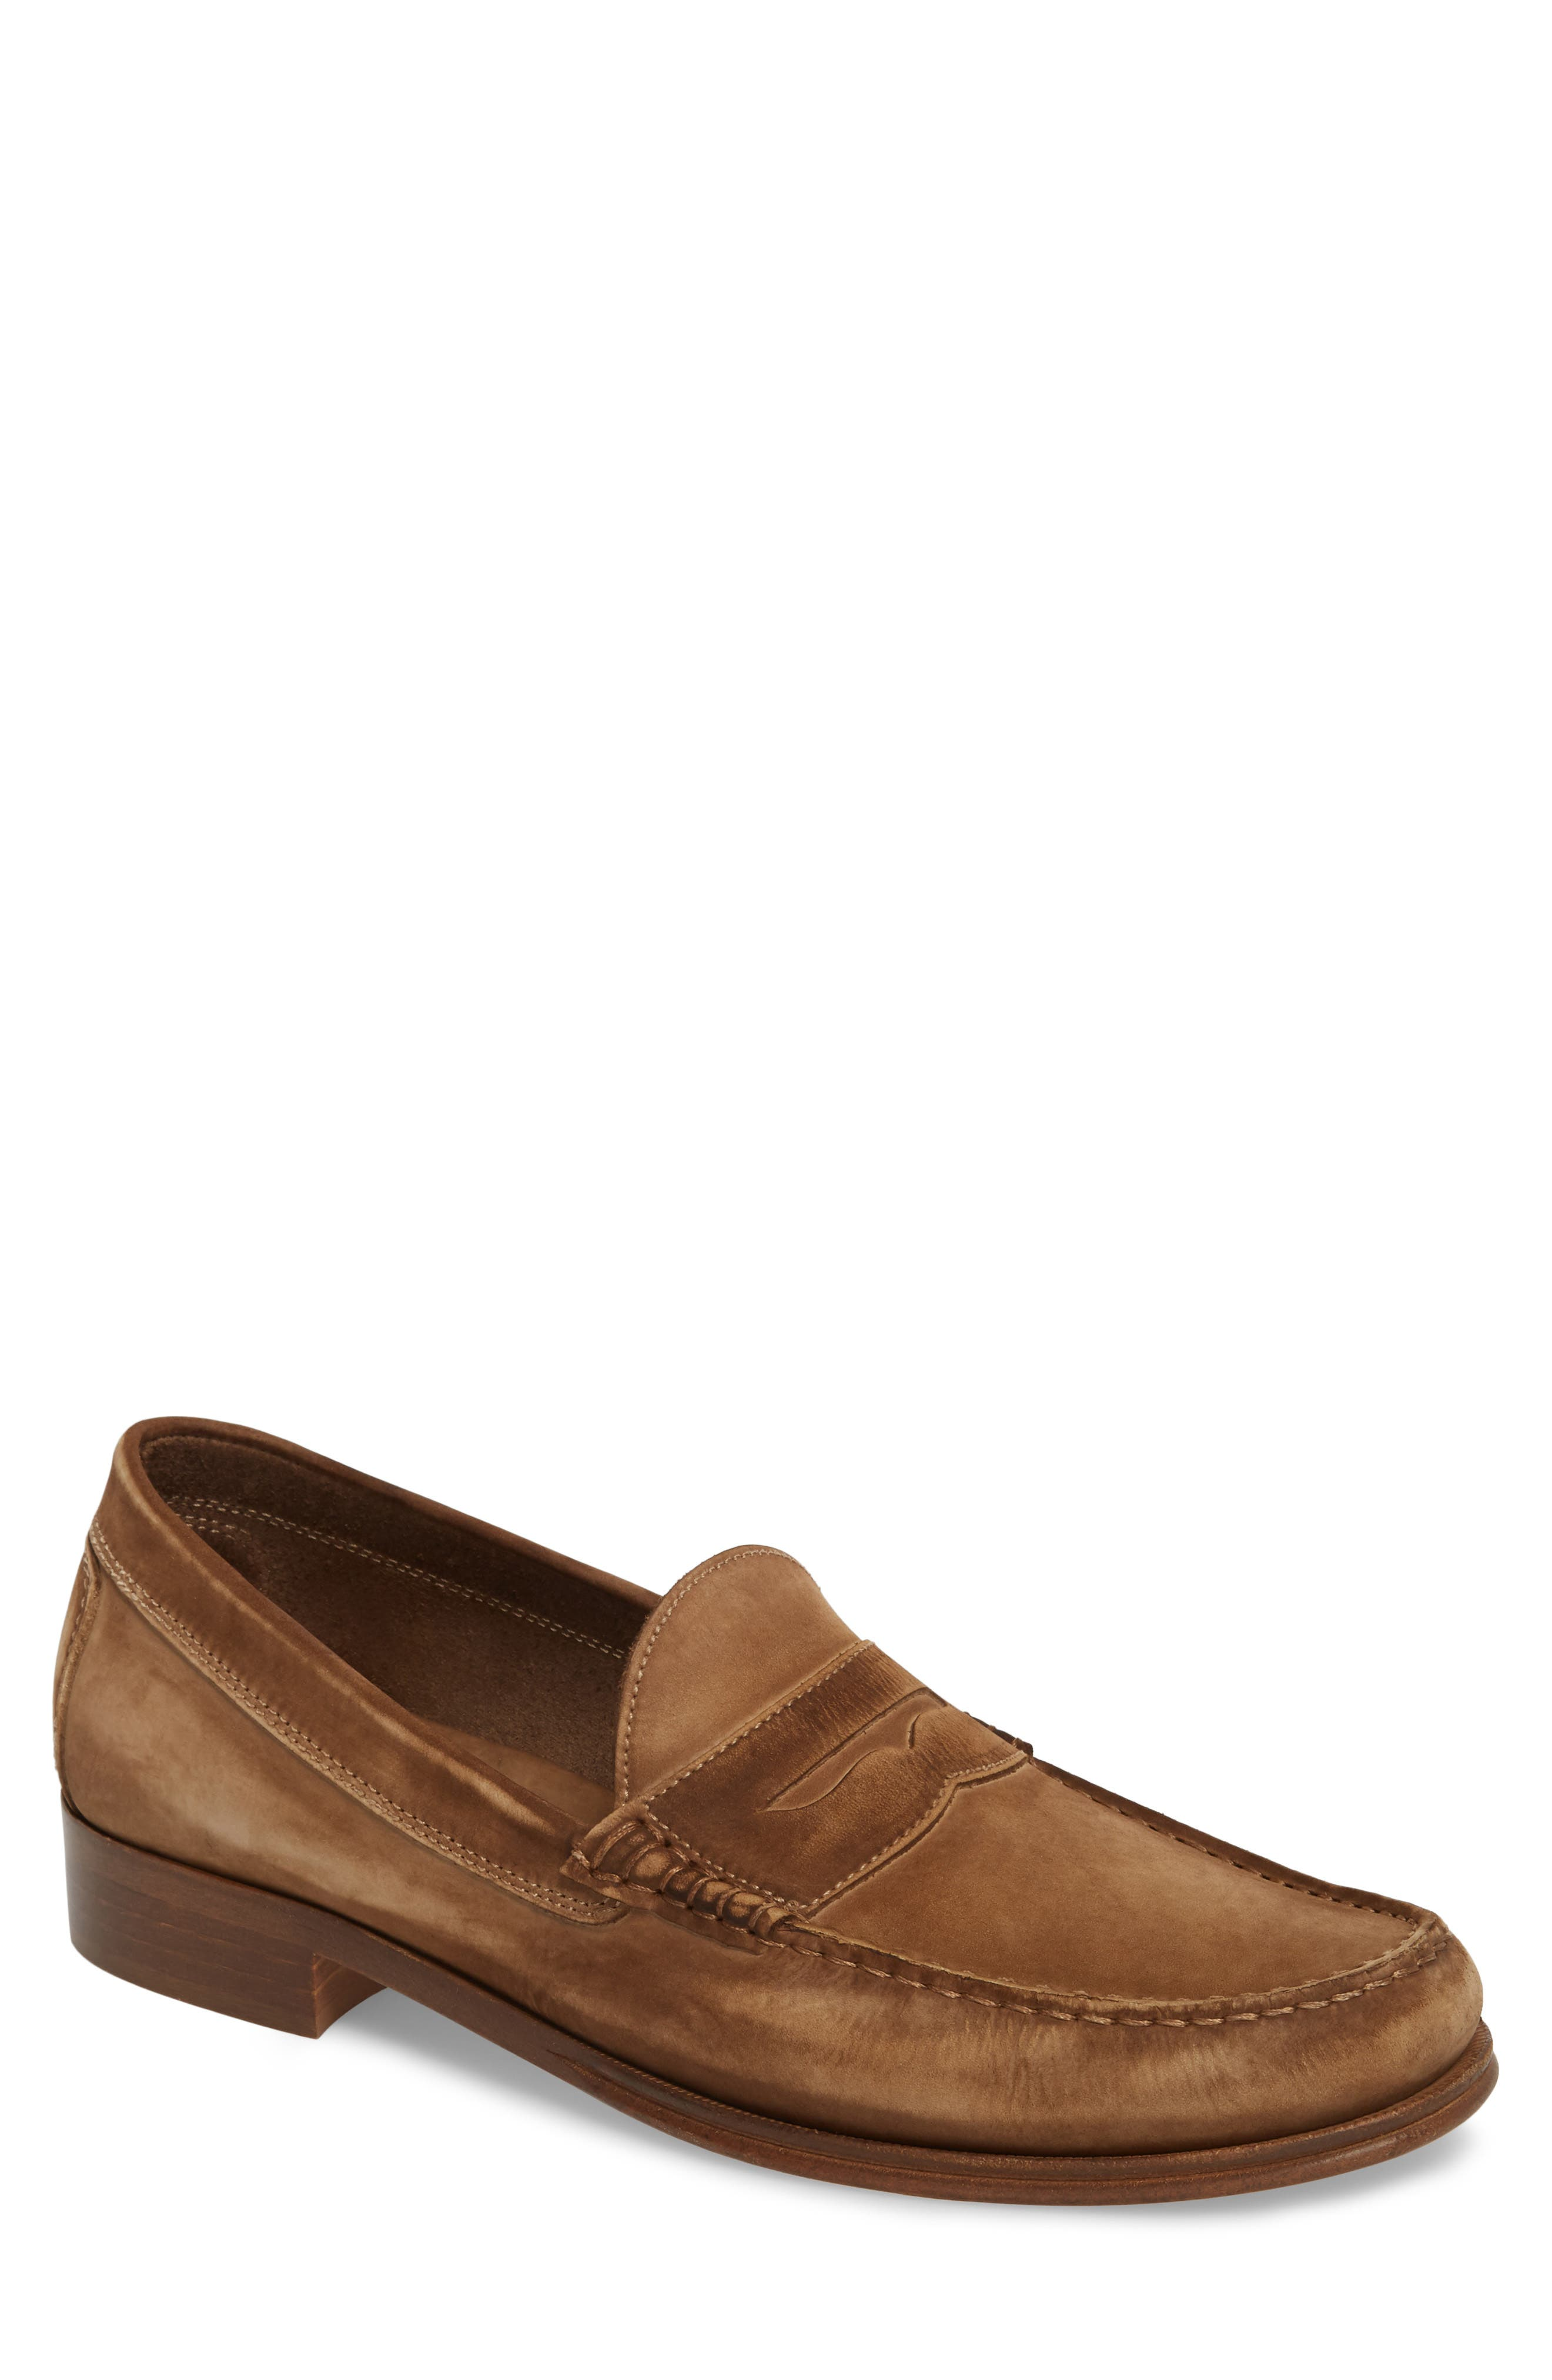 Nicola Penny Loafer,                             Main thumbnail 1, color,